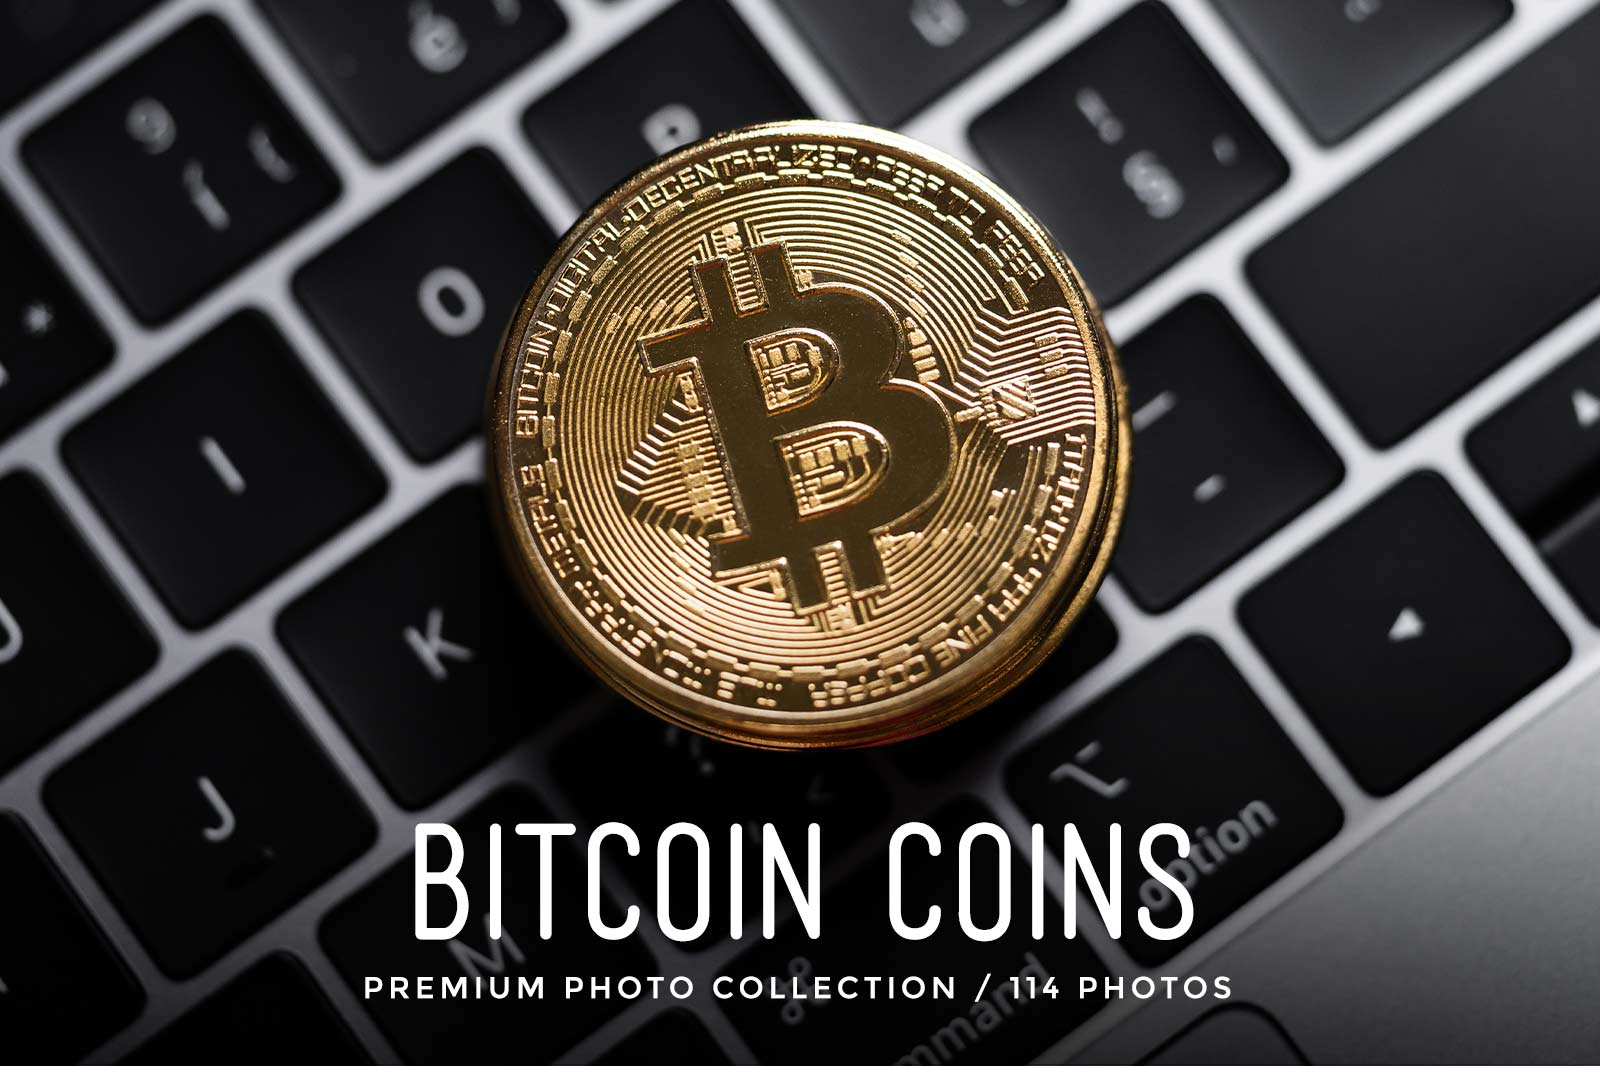 btc-bitcoins-stock-photos.jpg